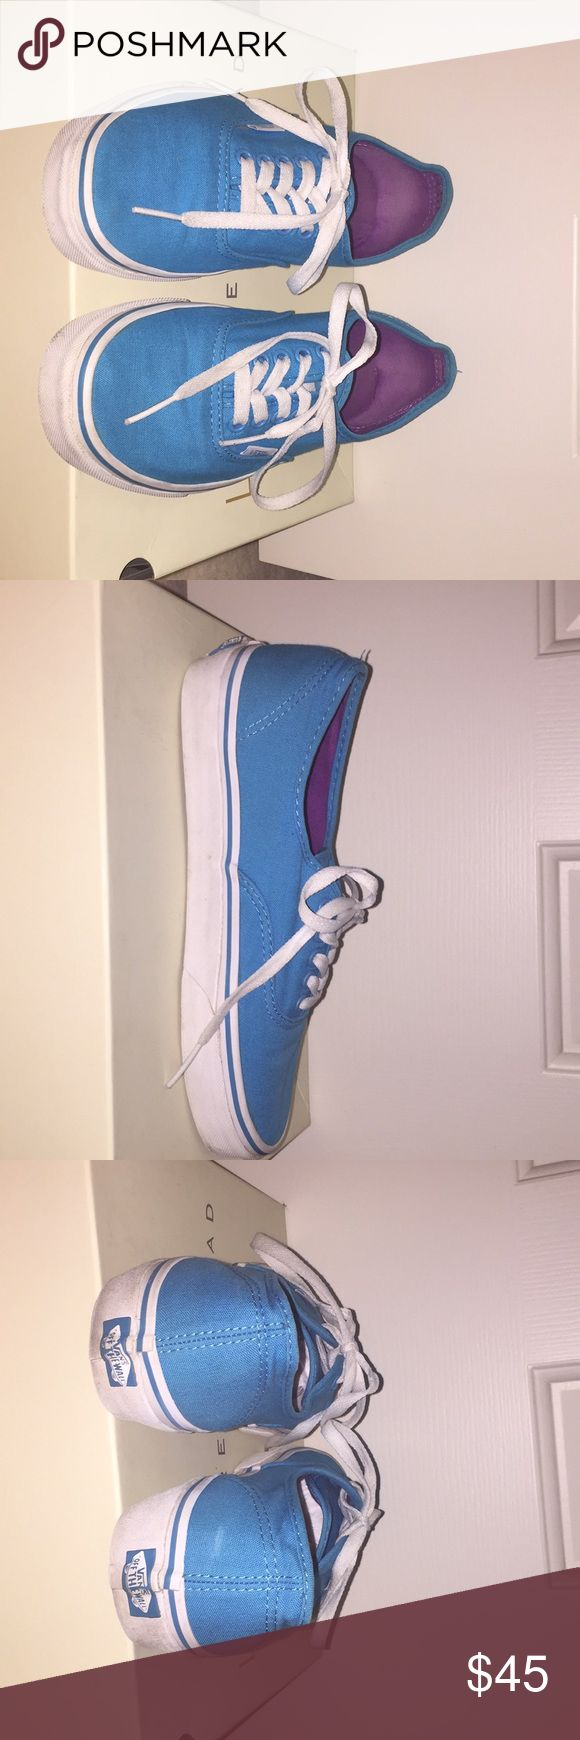 Vans Off the Wall teal blue and purple sneakers Limited edition Off the Wall teal vans with a purple interior. These sneakers are lightly worn with little scuffs. Gender neutral so available for boys as a size 7 or women's as a size 8.5. Vans Shoes Sneakers